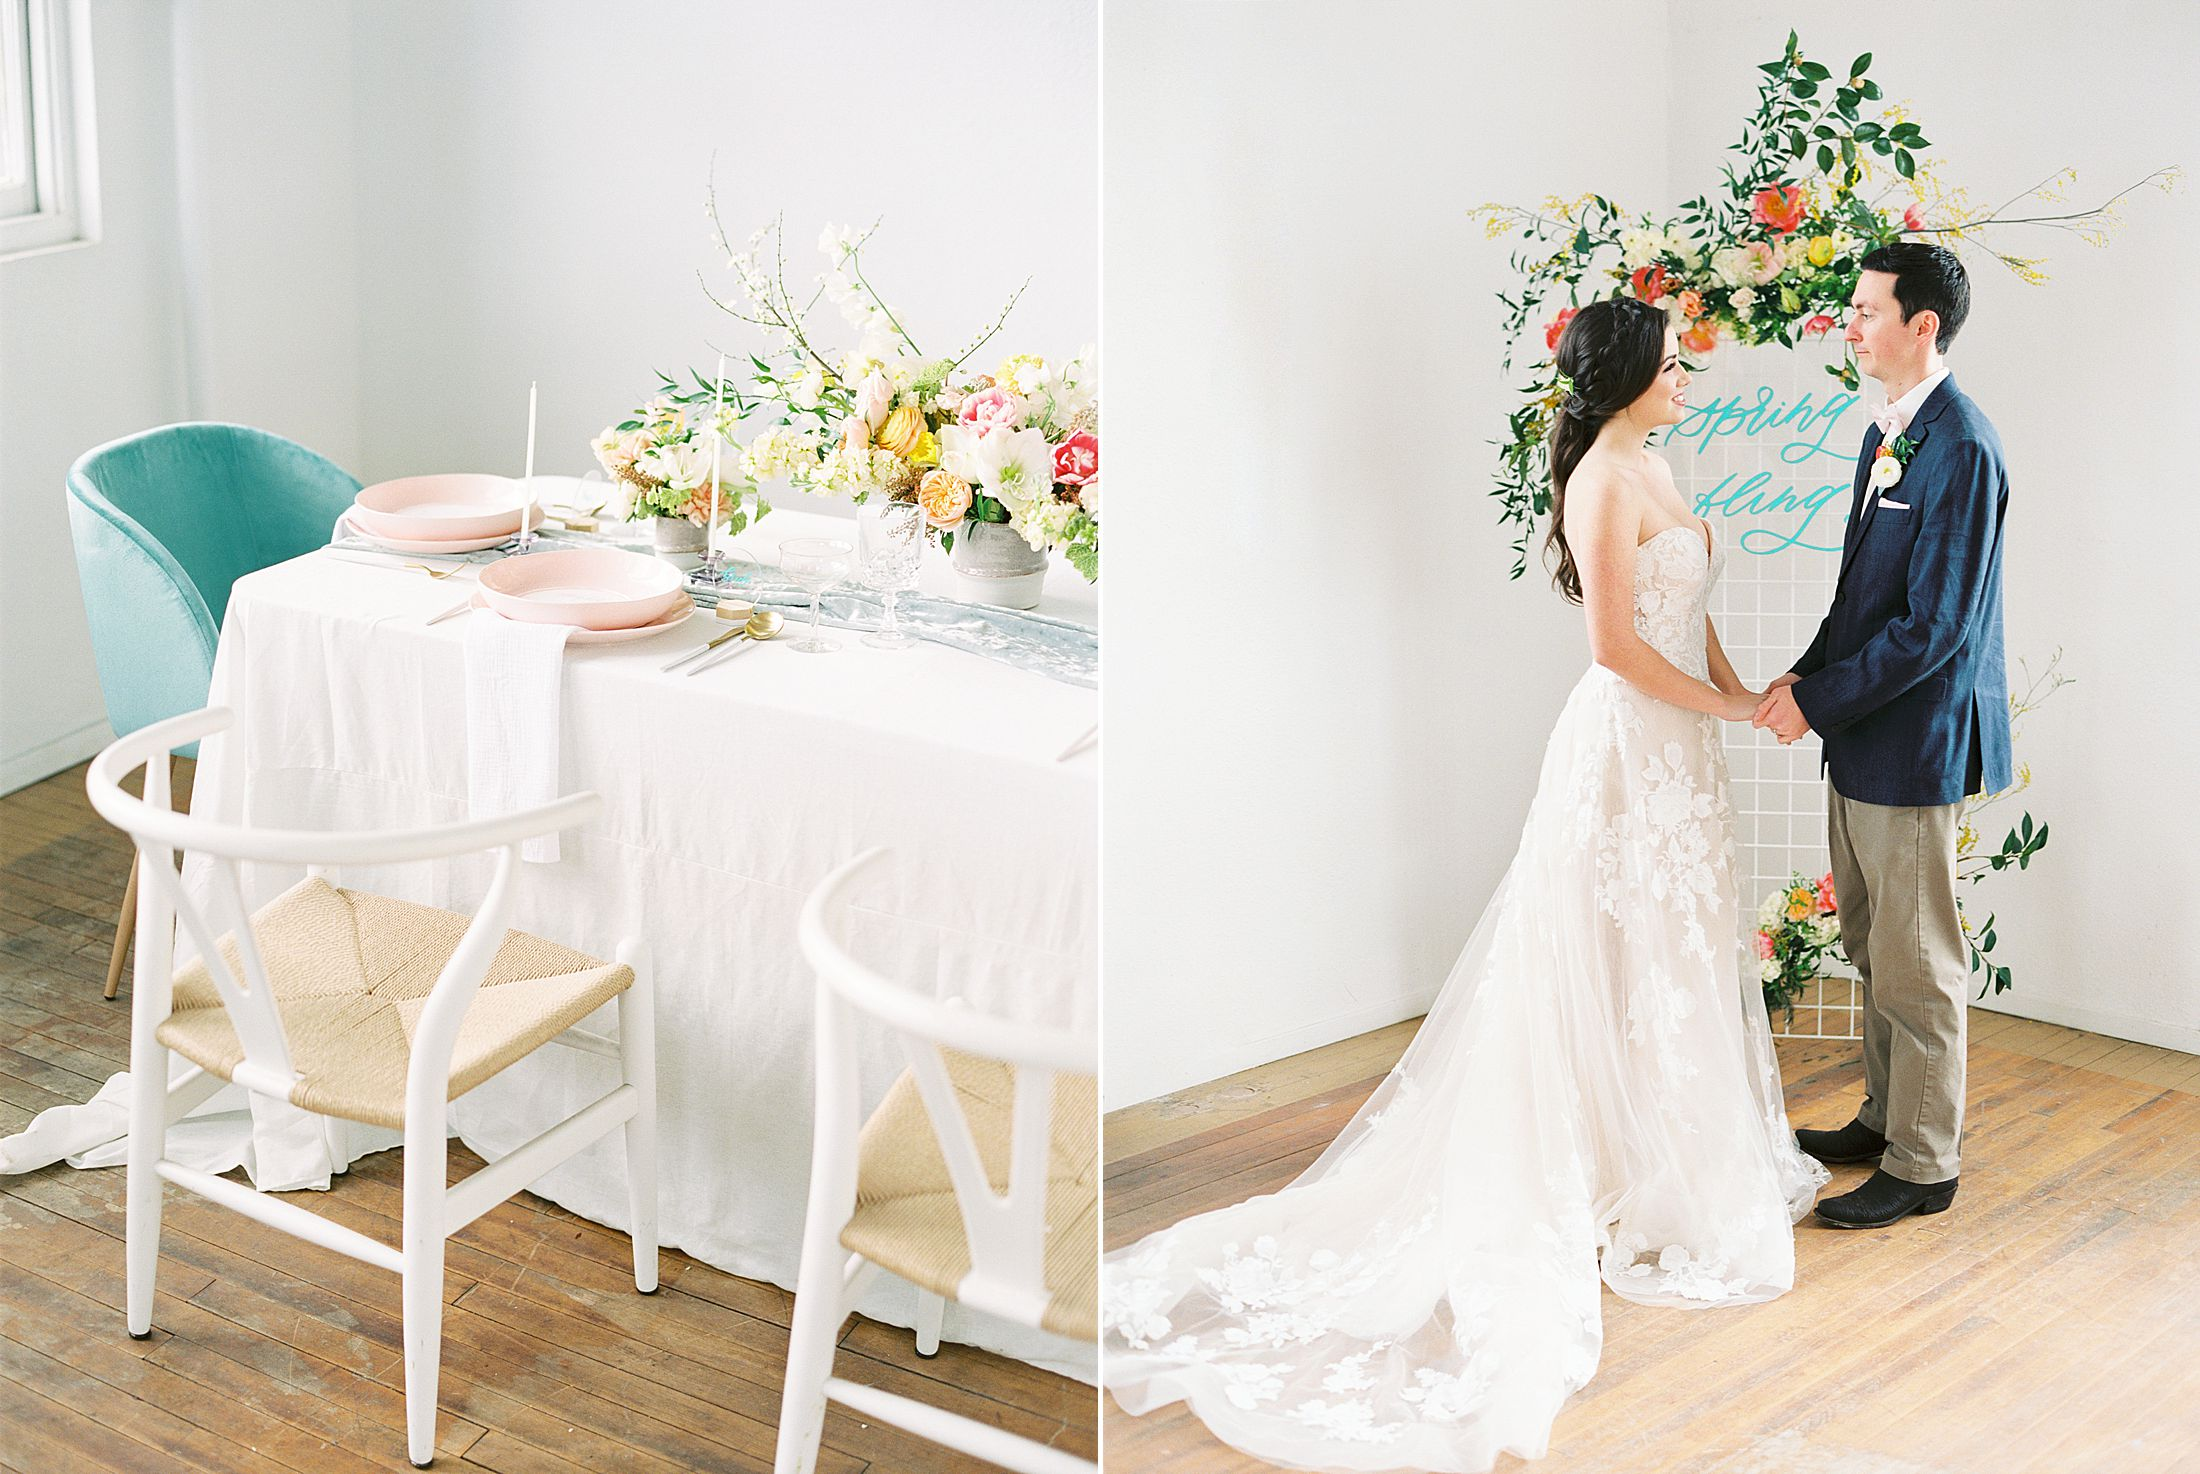 Bay Area Spring Wedding Inspiration - Ashley Baumgartner - Inspired By This - Party Crush Studio and Lens of Lenox Videography - Bay Area Wedding Photography_0041.jpg